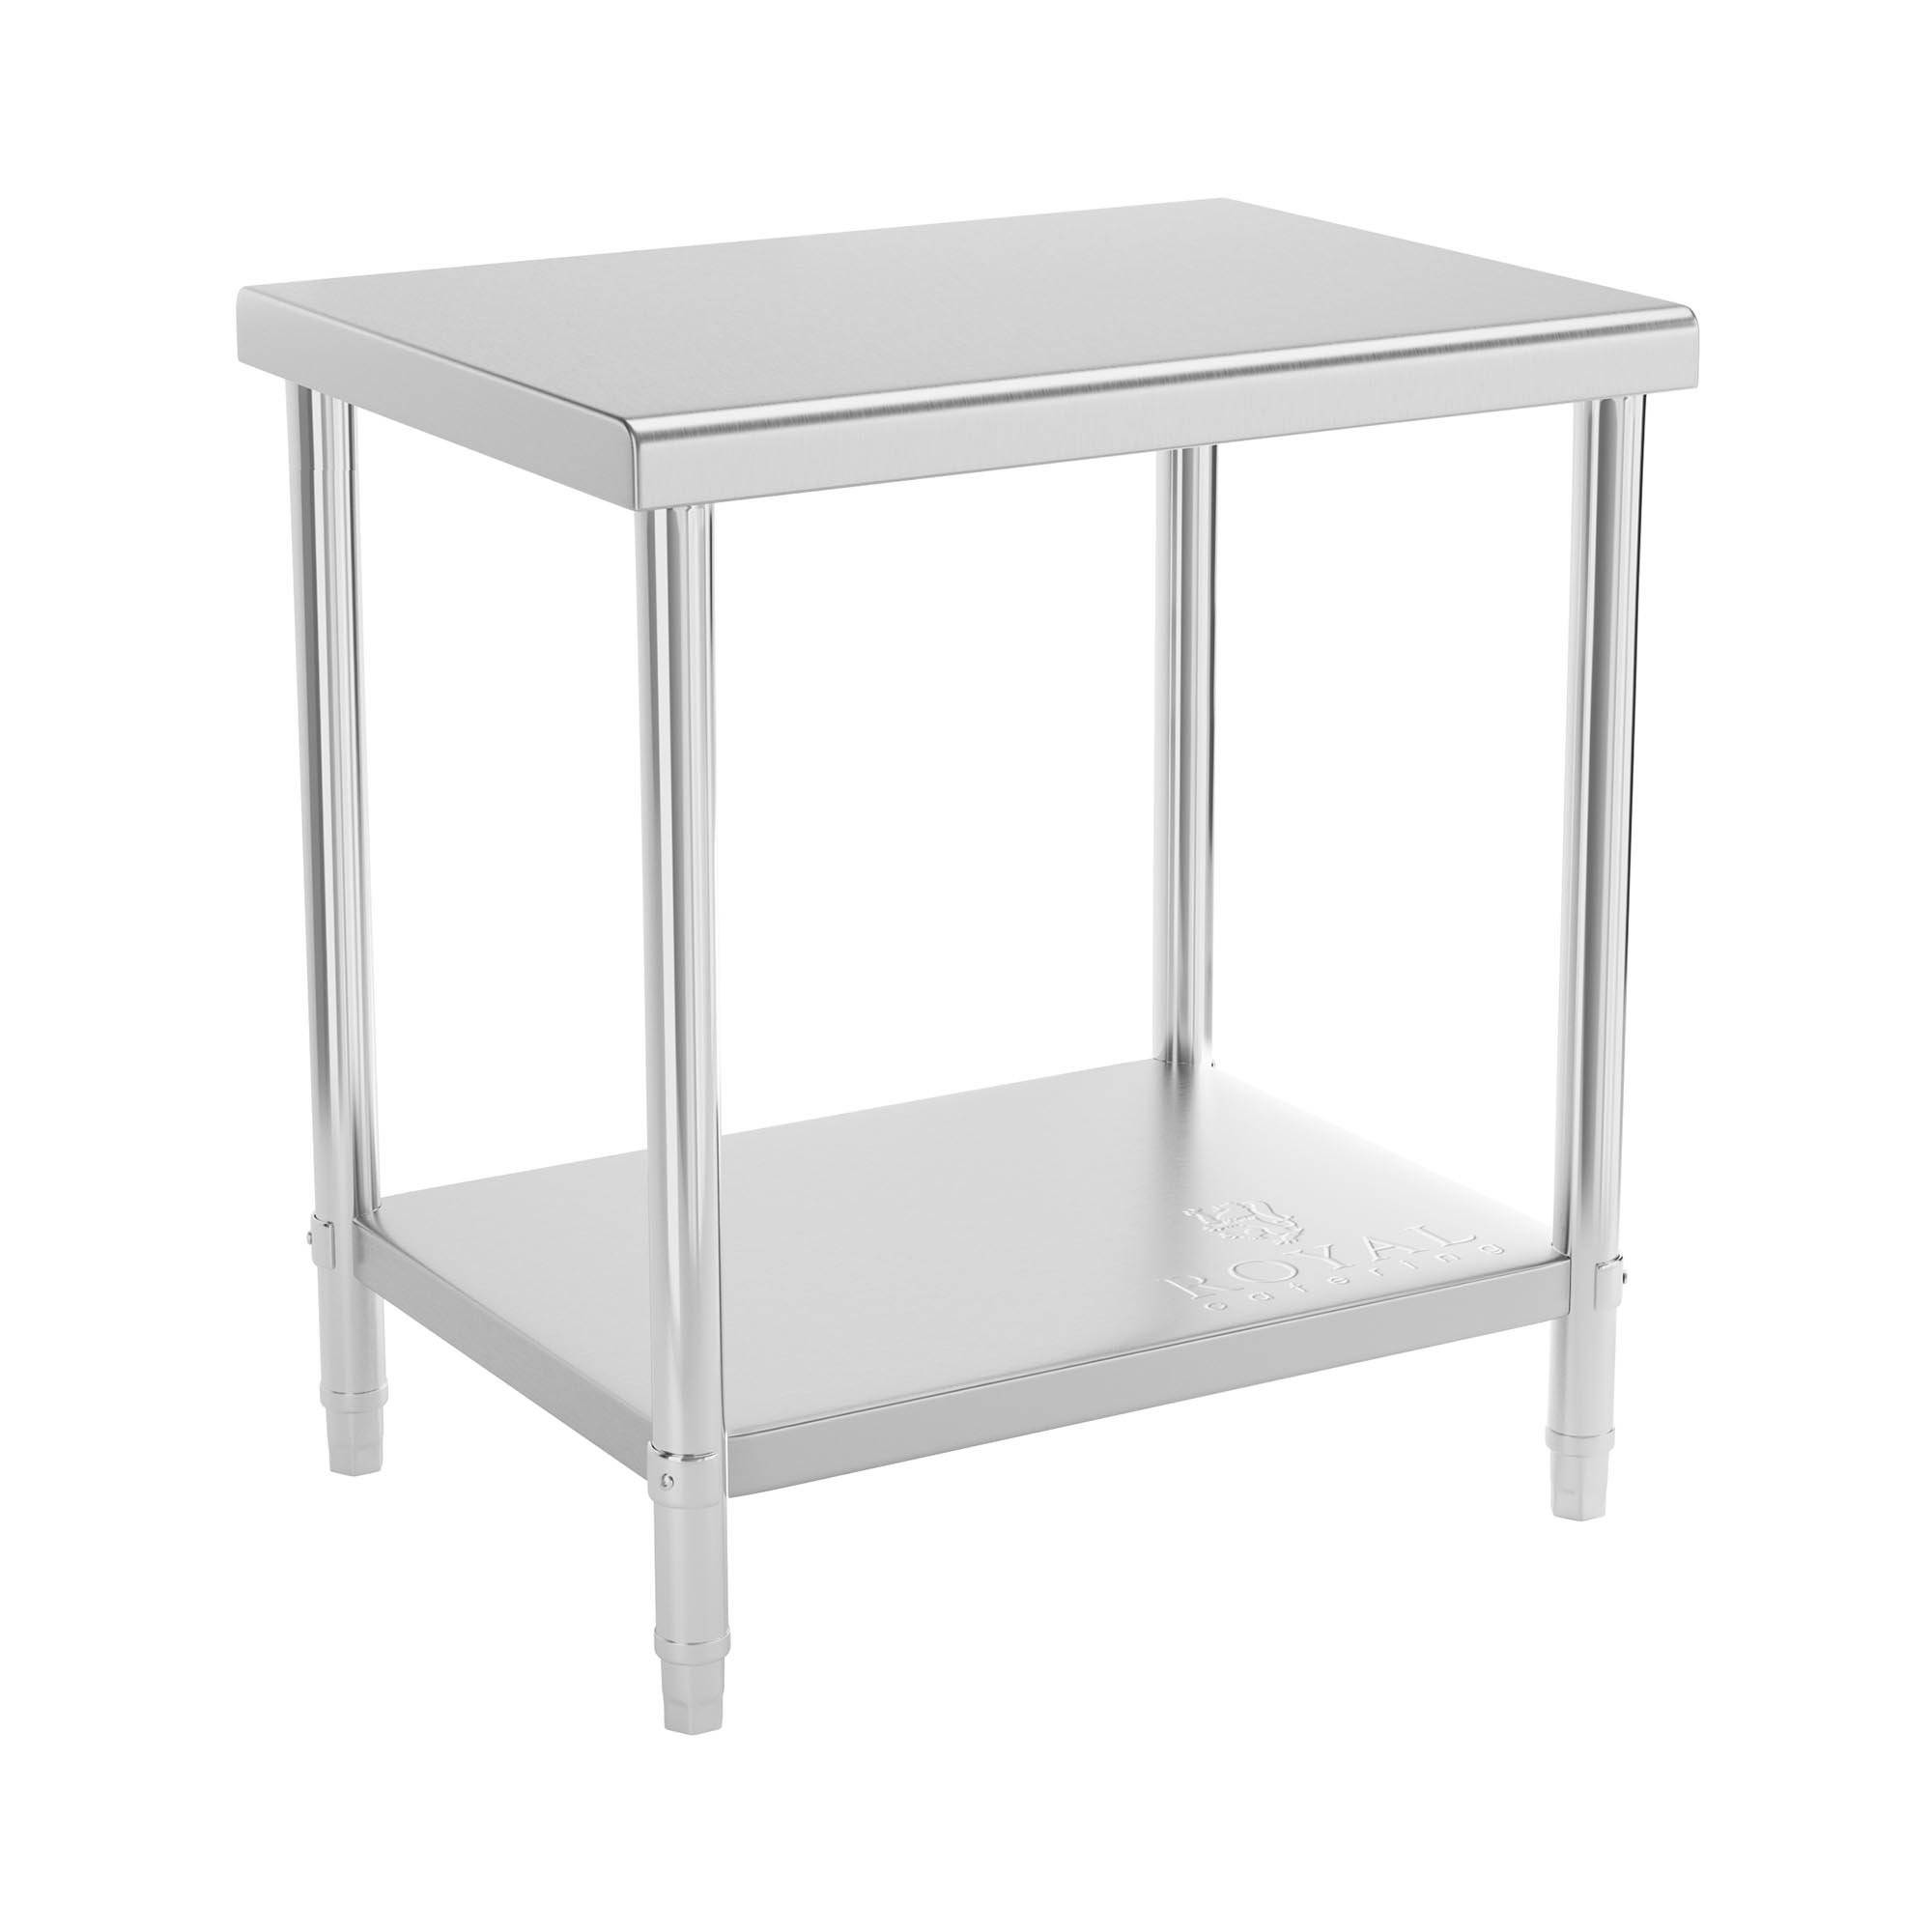 Royal Catering Table de travail en inox - 80 x 60 cm - Capacité de charge de 190 kg RCAT-80/60-NW